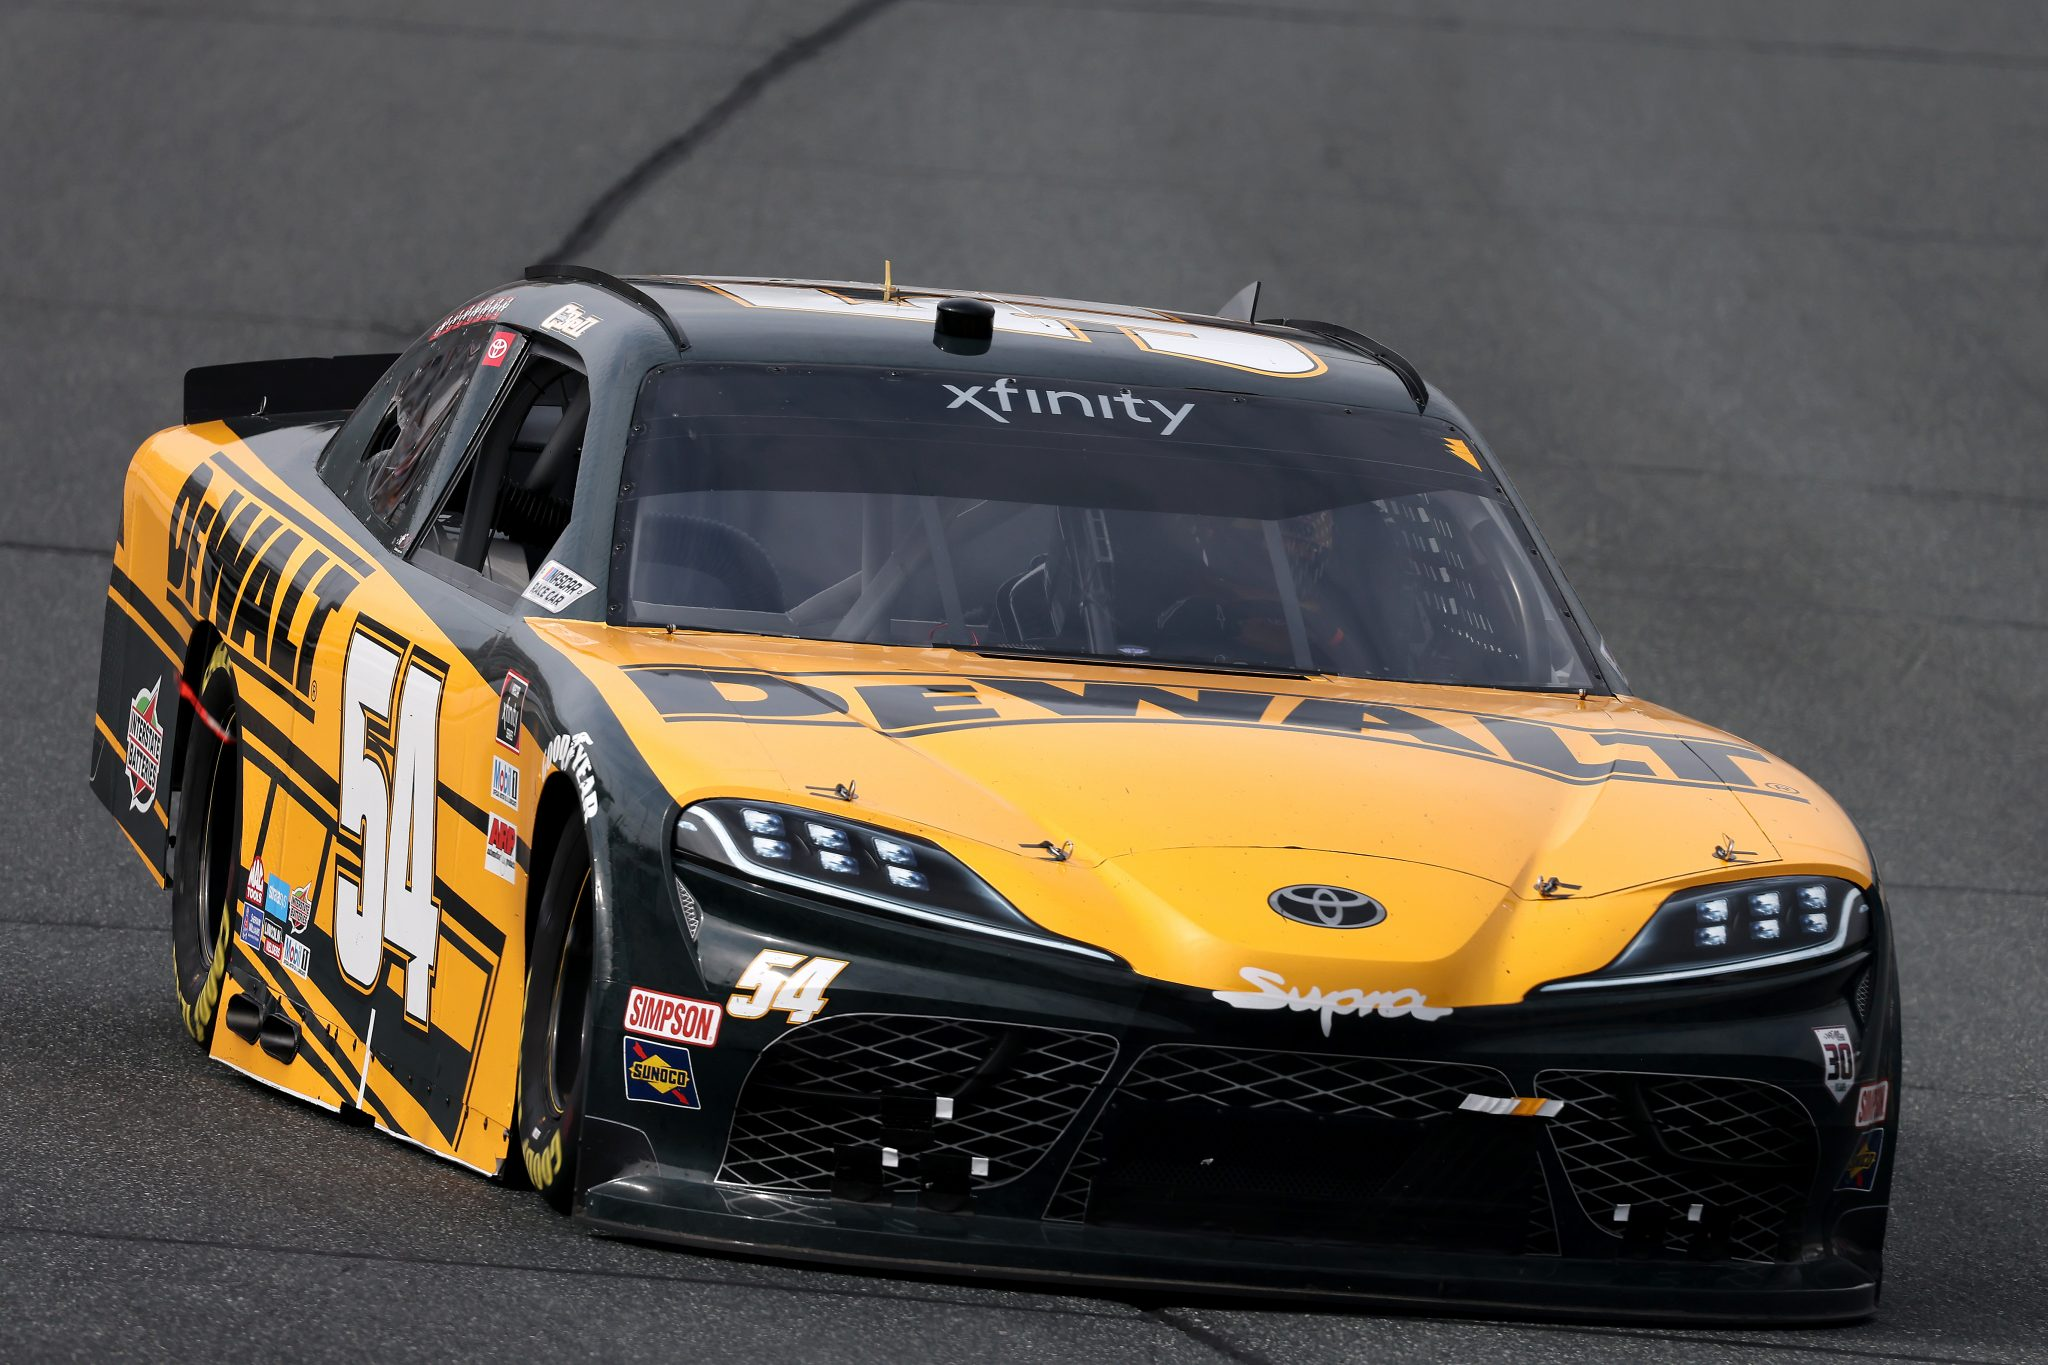 LOUDON, NEW HAMPSHIRE - JULY 17: Christopher Bell, driver of the #54 DEWALT Toyota, drives during the NASCAR Xfinity Series Ambetter Get Vaccinated 200 at New Hampshire Motor Speedway on July 17, 2021 in Loudon, New Hampshire. (Photo by James Gilbert/Getty Images) | Getty Images